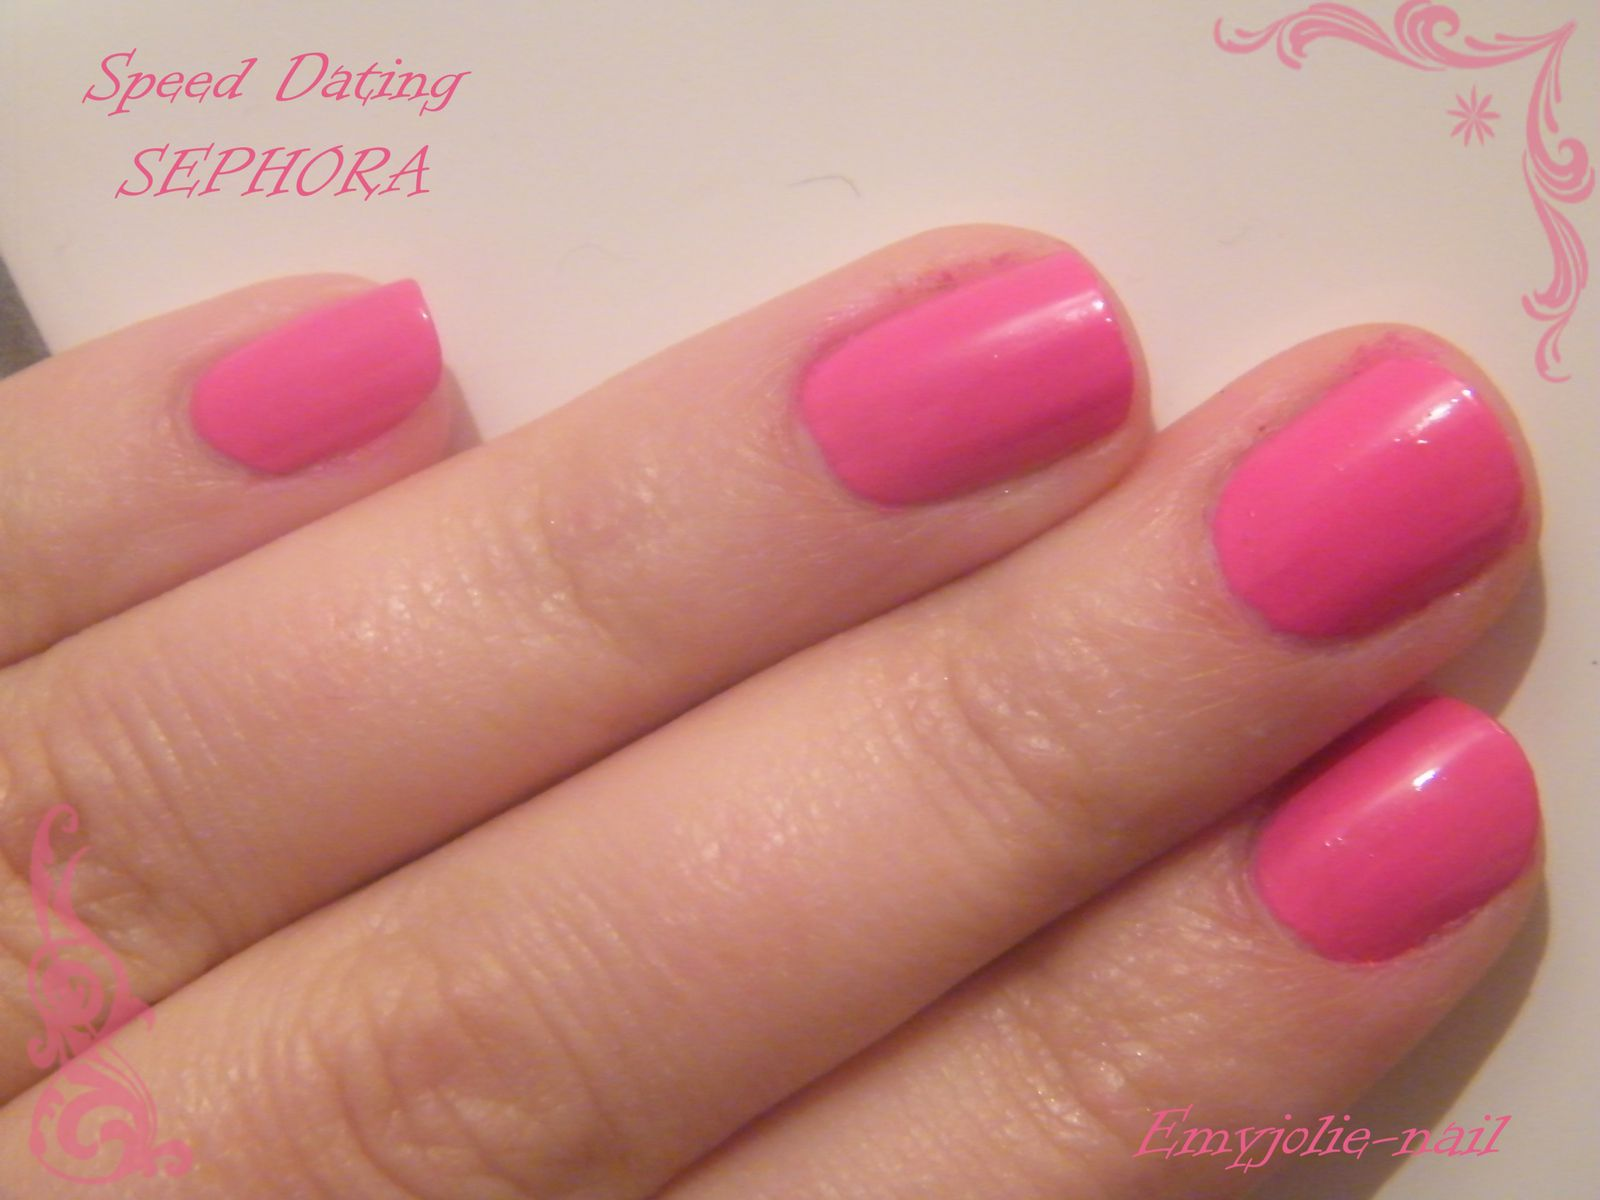 Sephora vernis speed dating